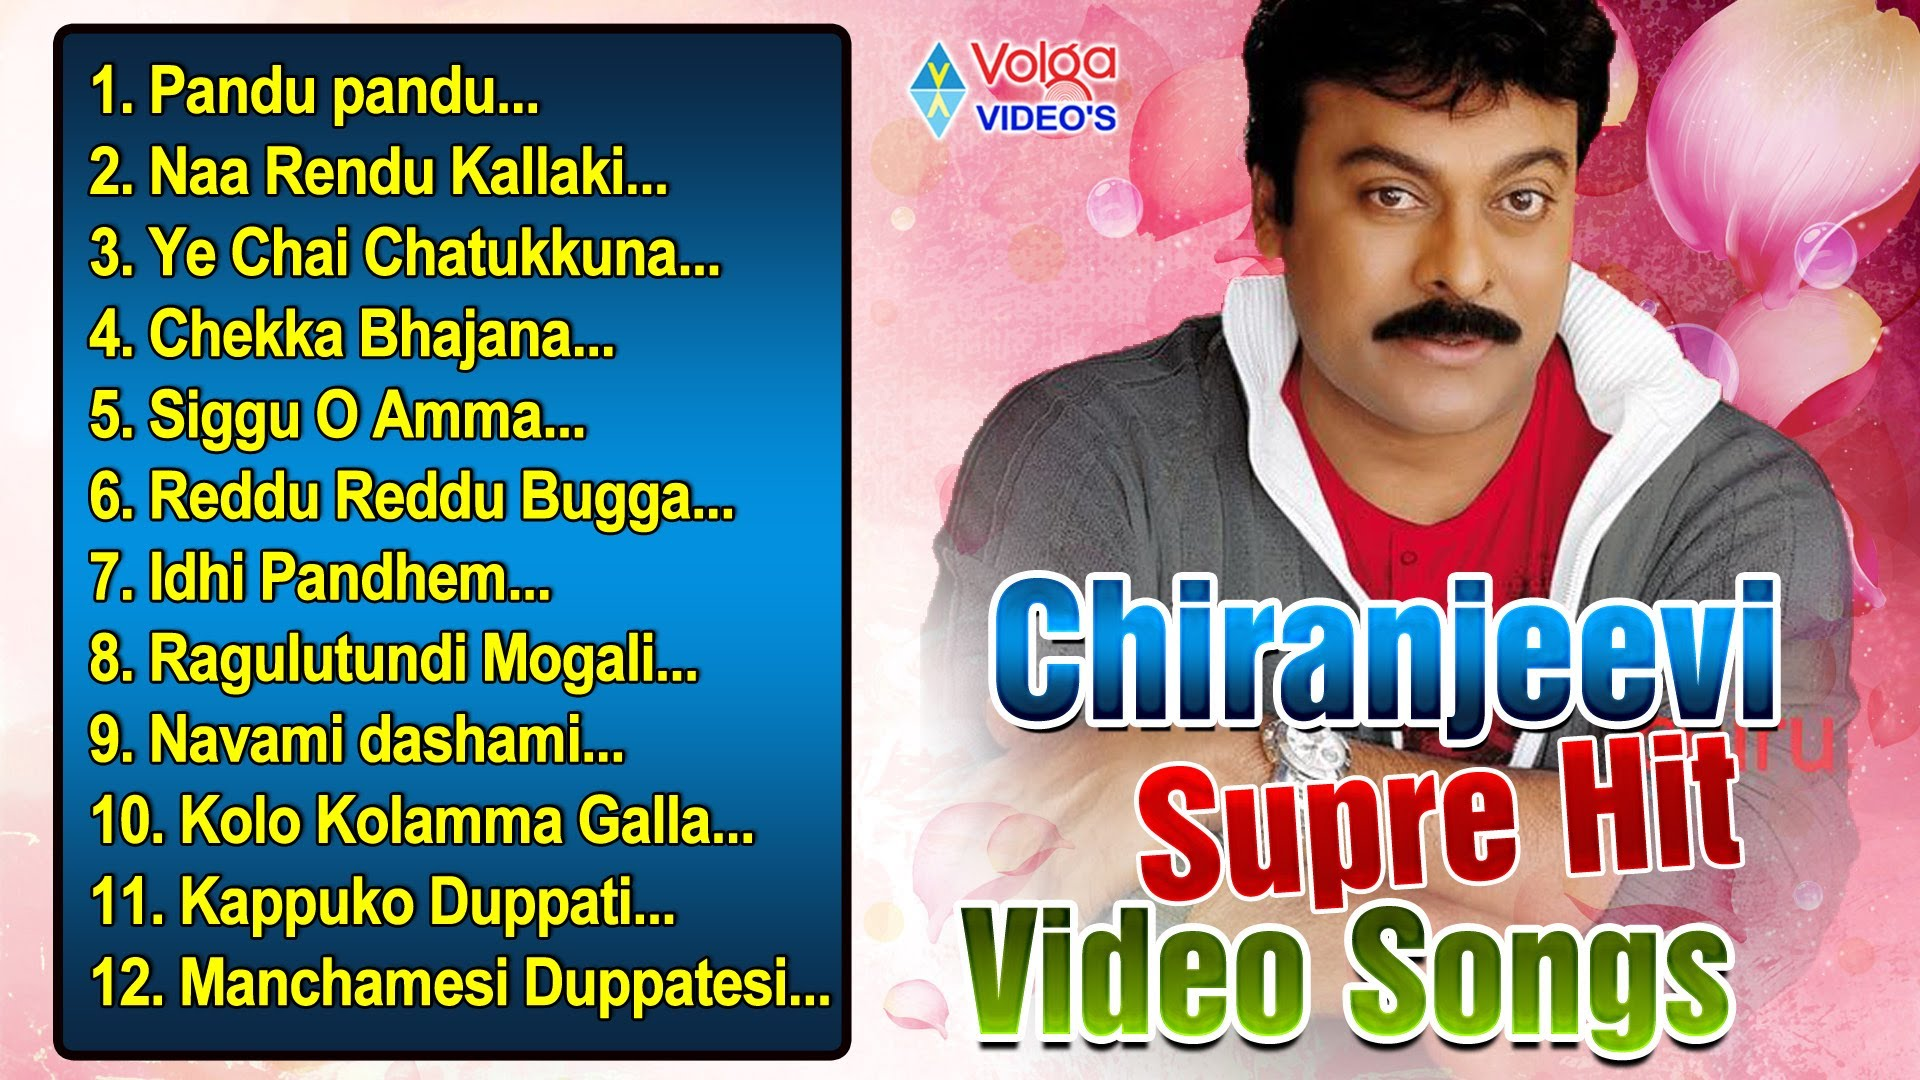 Chiranjeevi Romantic Hits Songs Download - Naa Songs